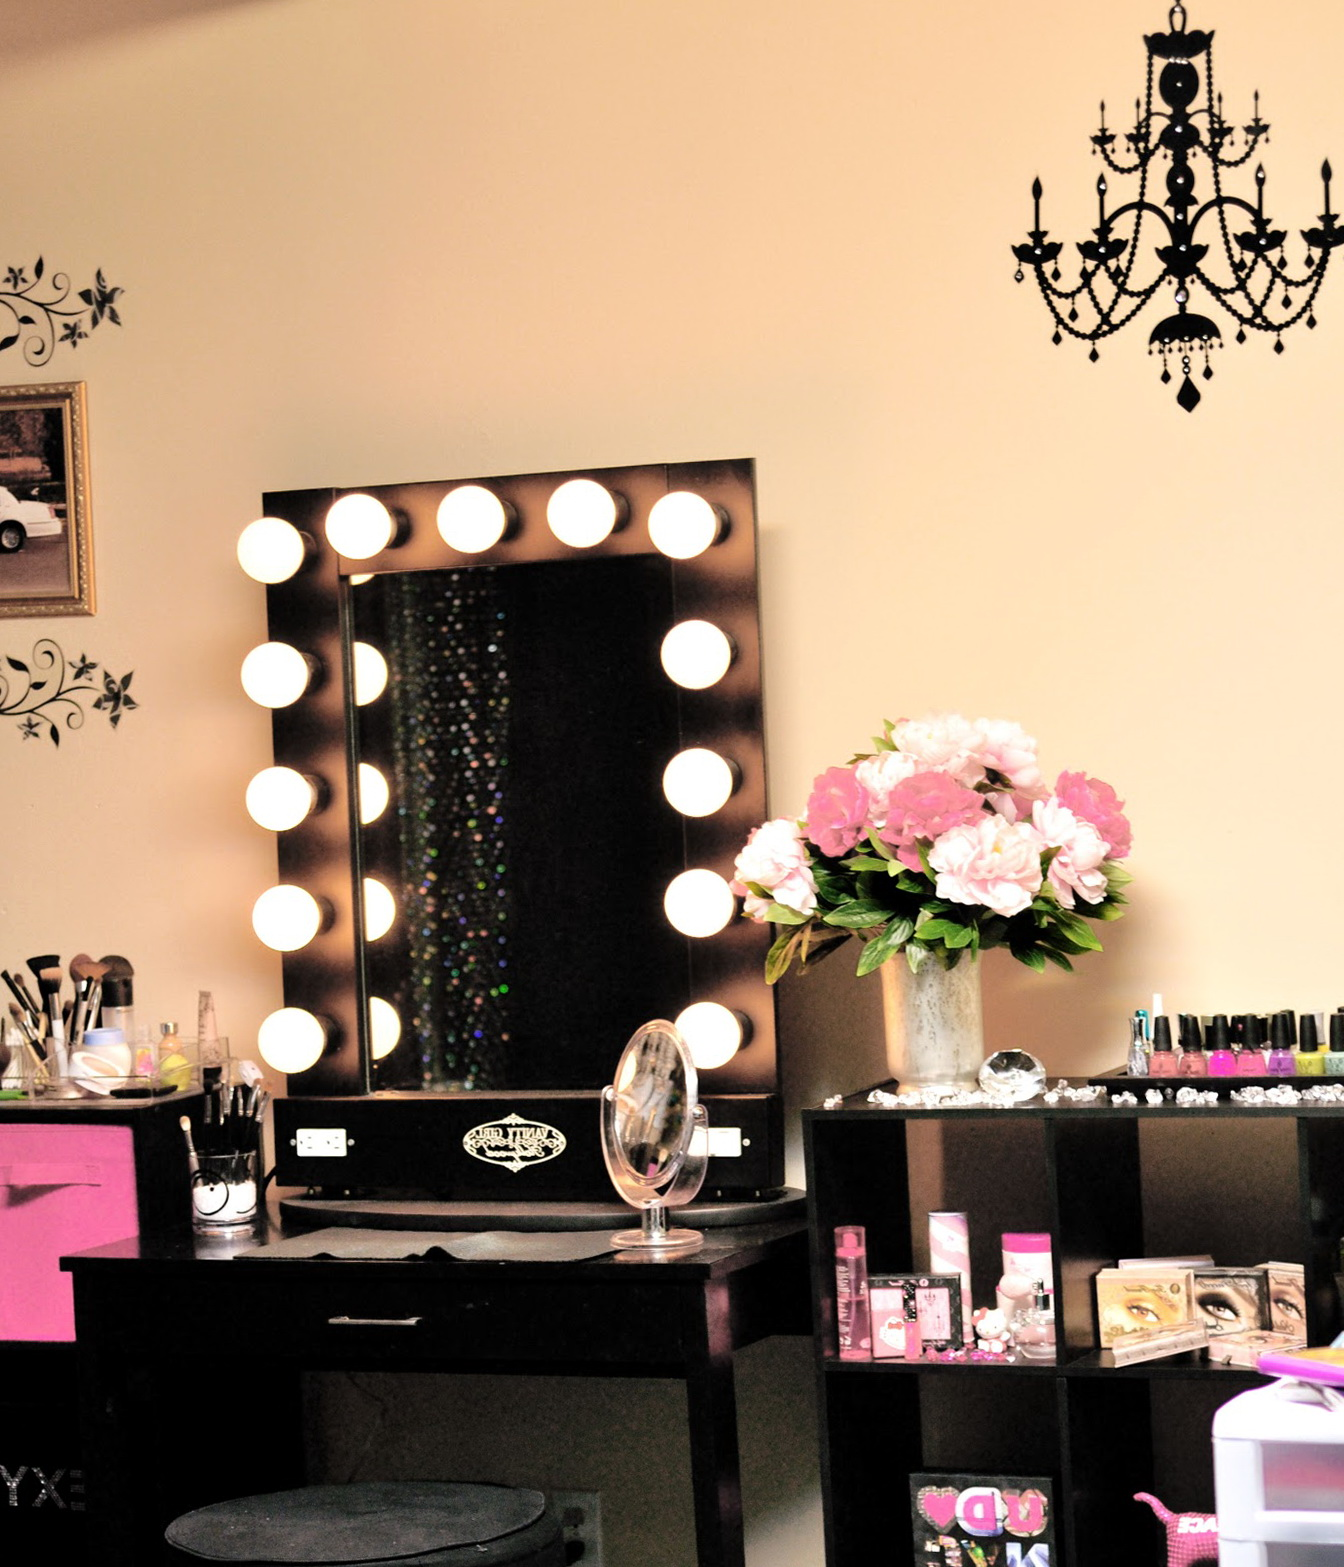 Makeup Vanity With Lights Nz : Makeup Mirror With Light Bulbs Ikea - Mugeek Vidalondon